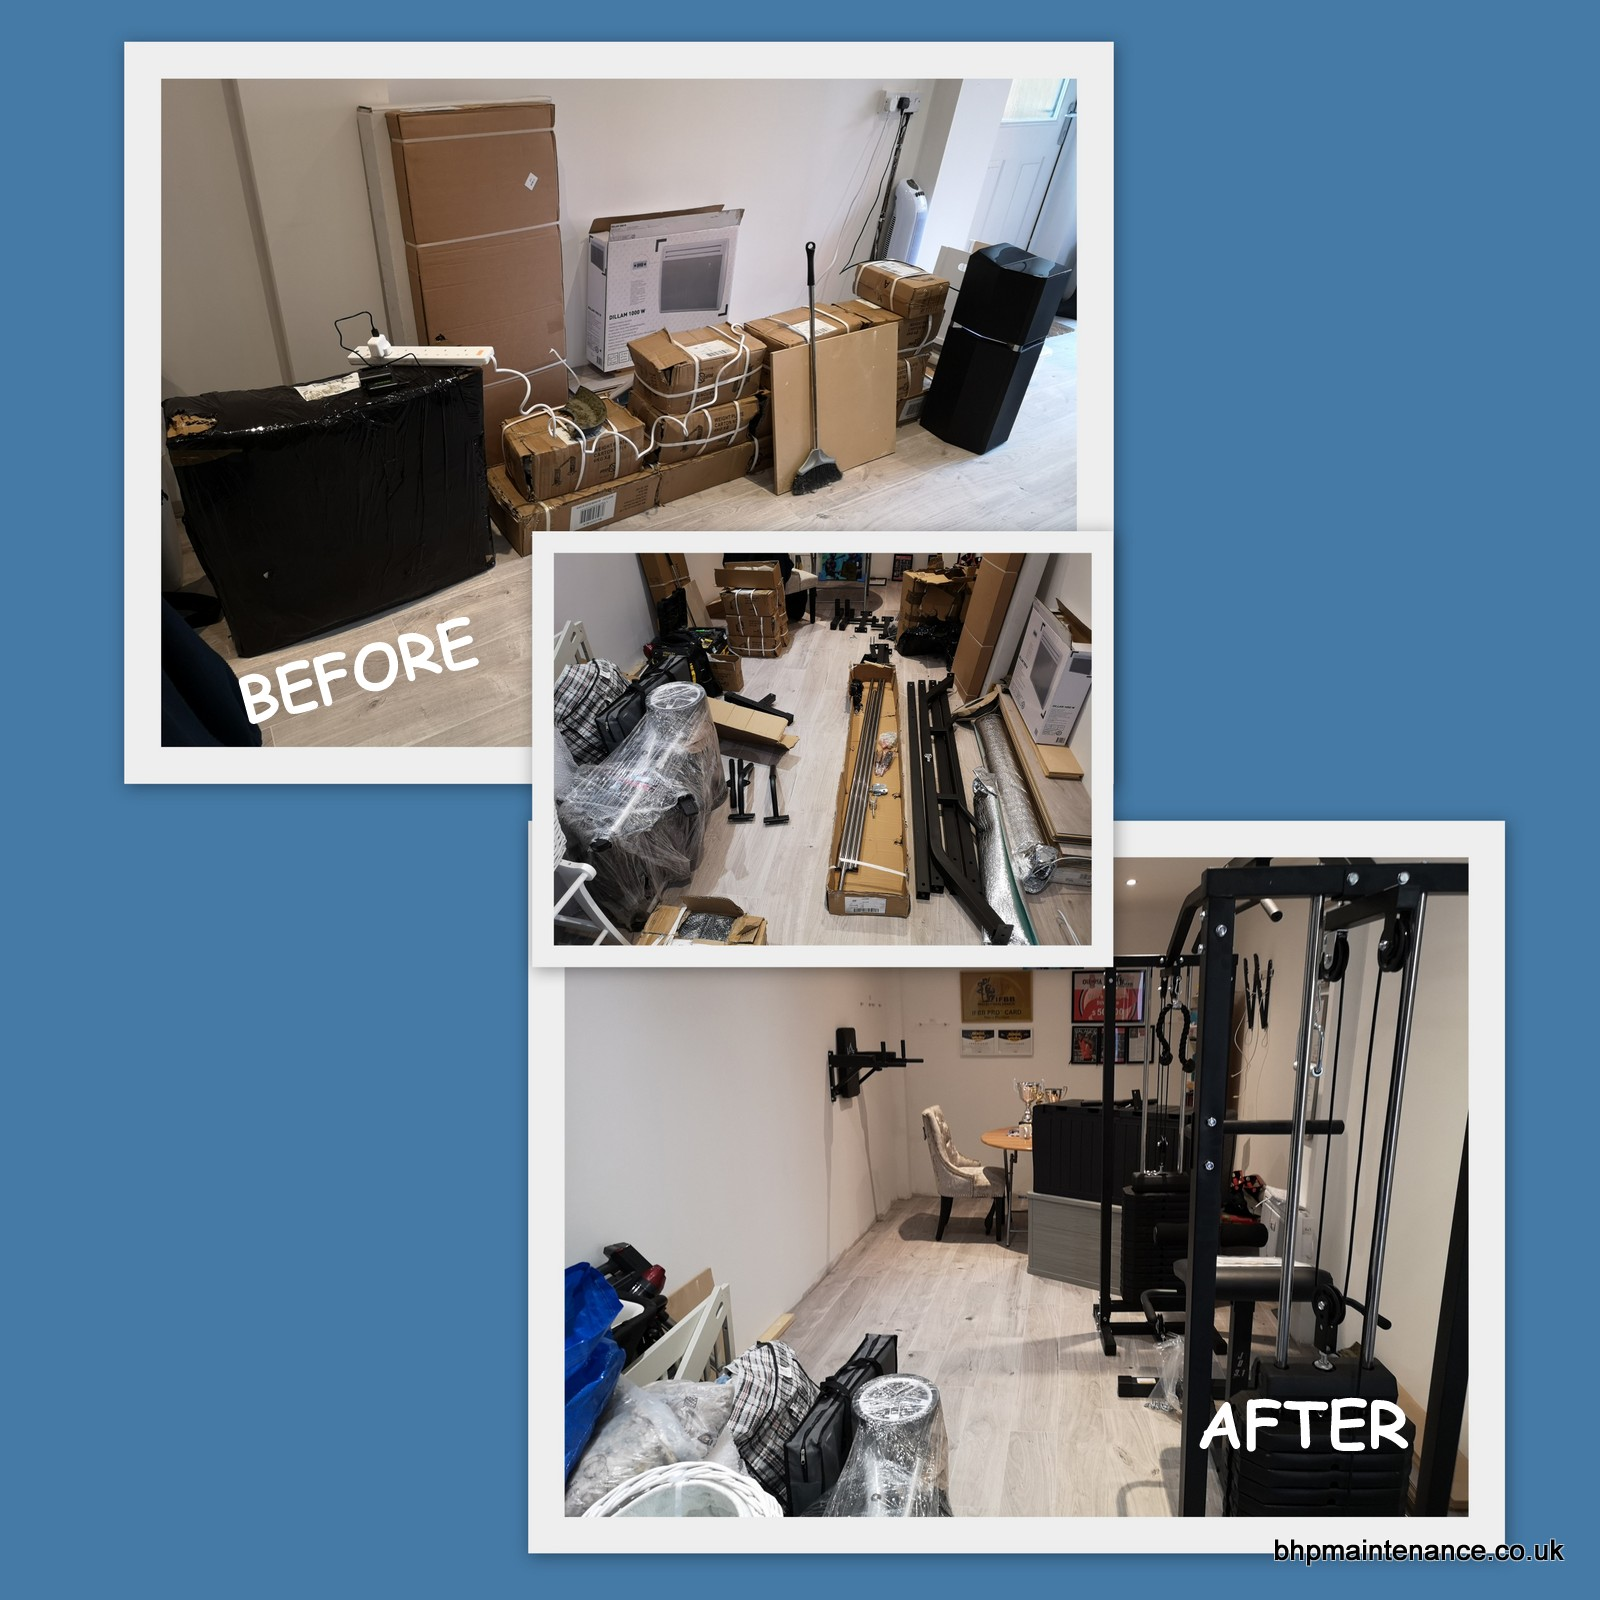 GYM EQUIPMENT ASSEMBLY